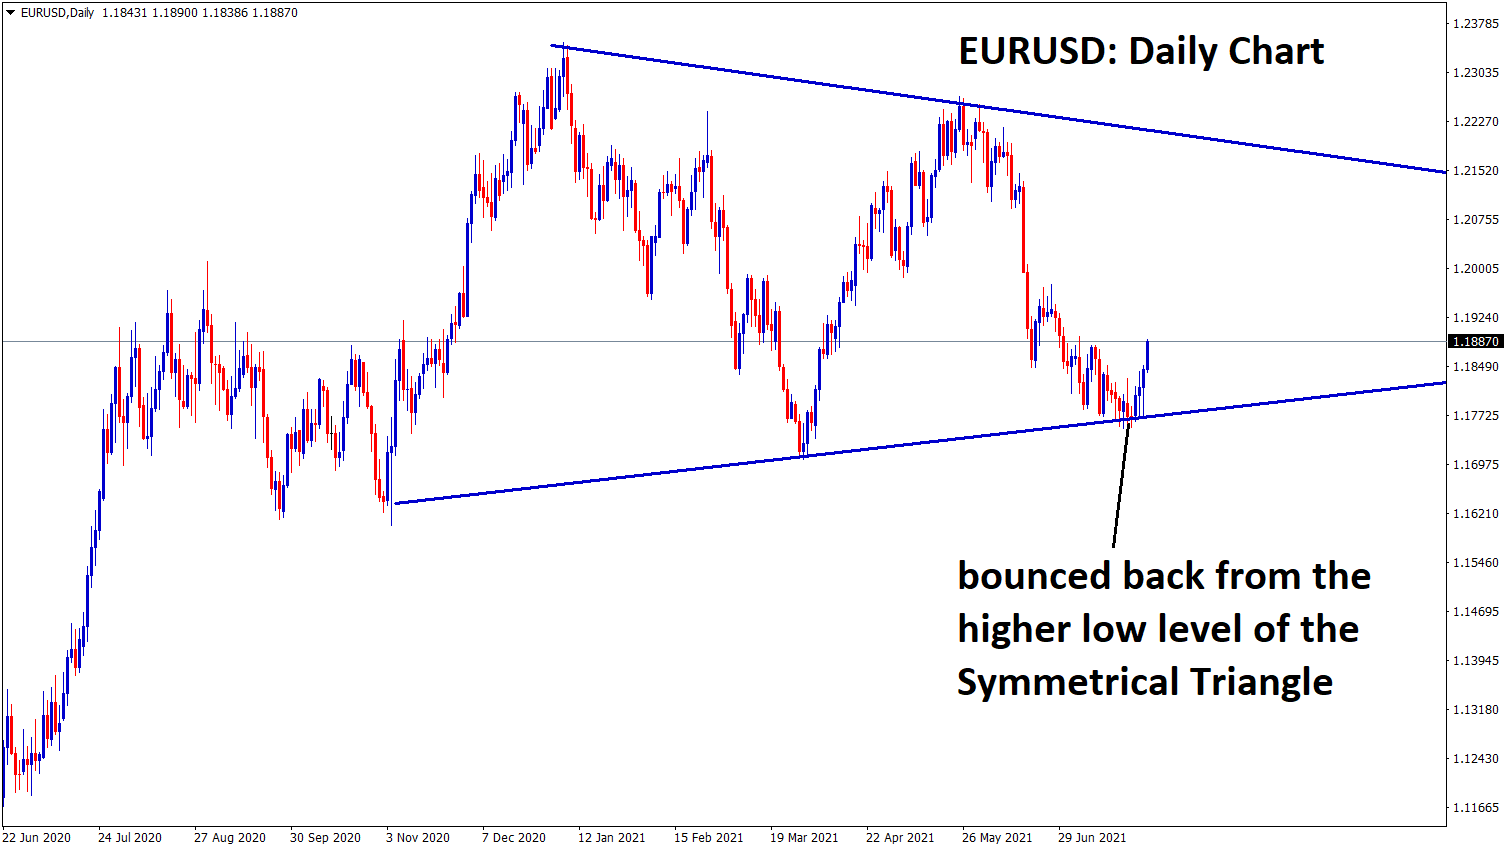 EURUSD bouncing back from the bottom level of the symmetrical triangle in the daily chart